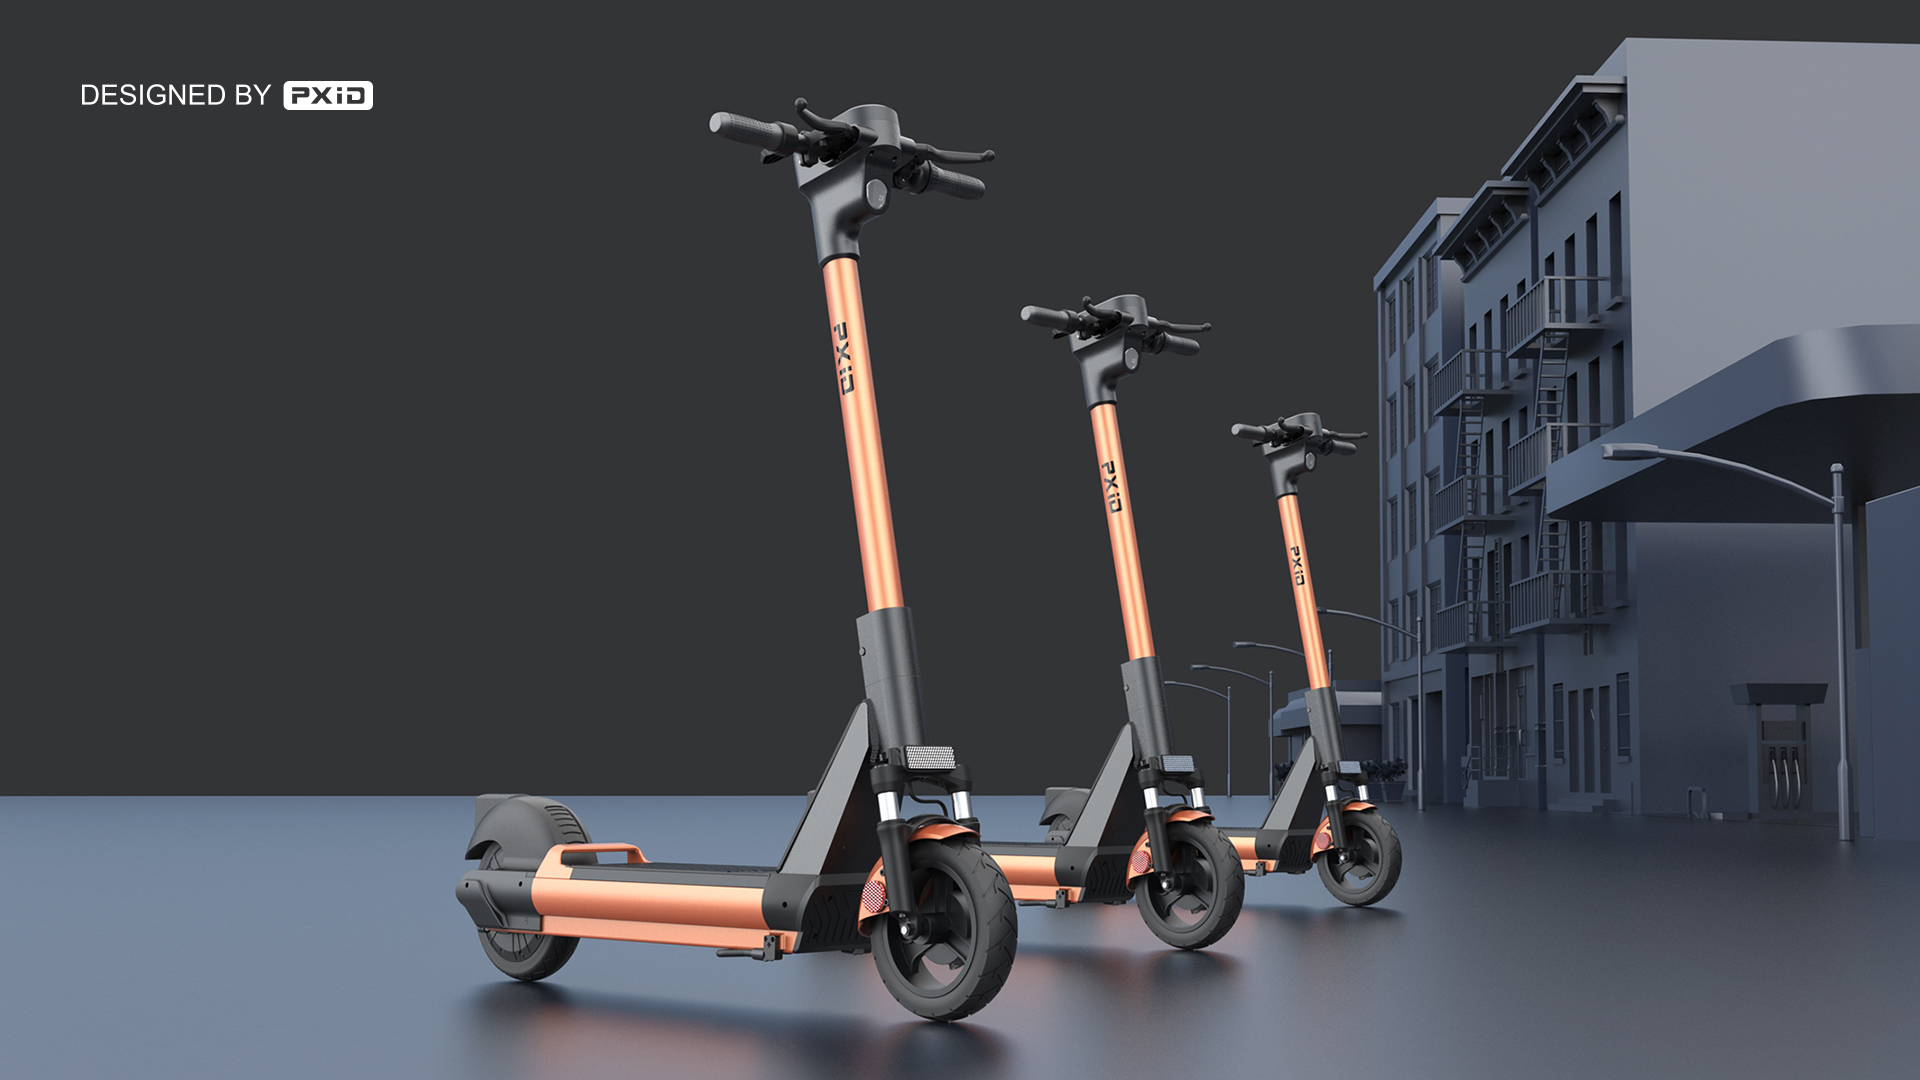 Elka electric scooter entrepreneur calls on government to revise laws